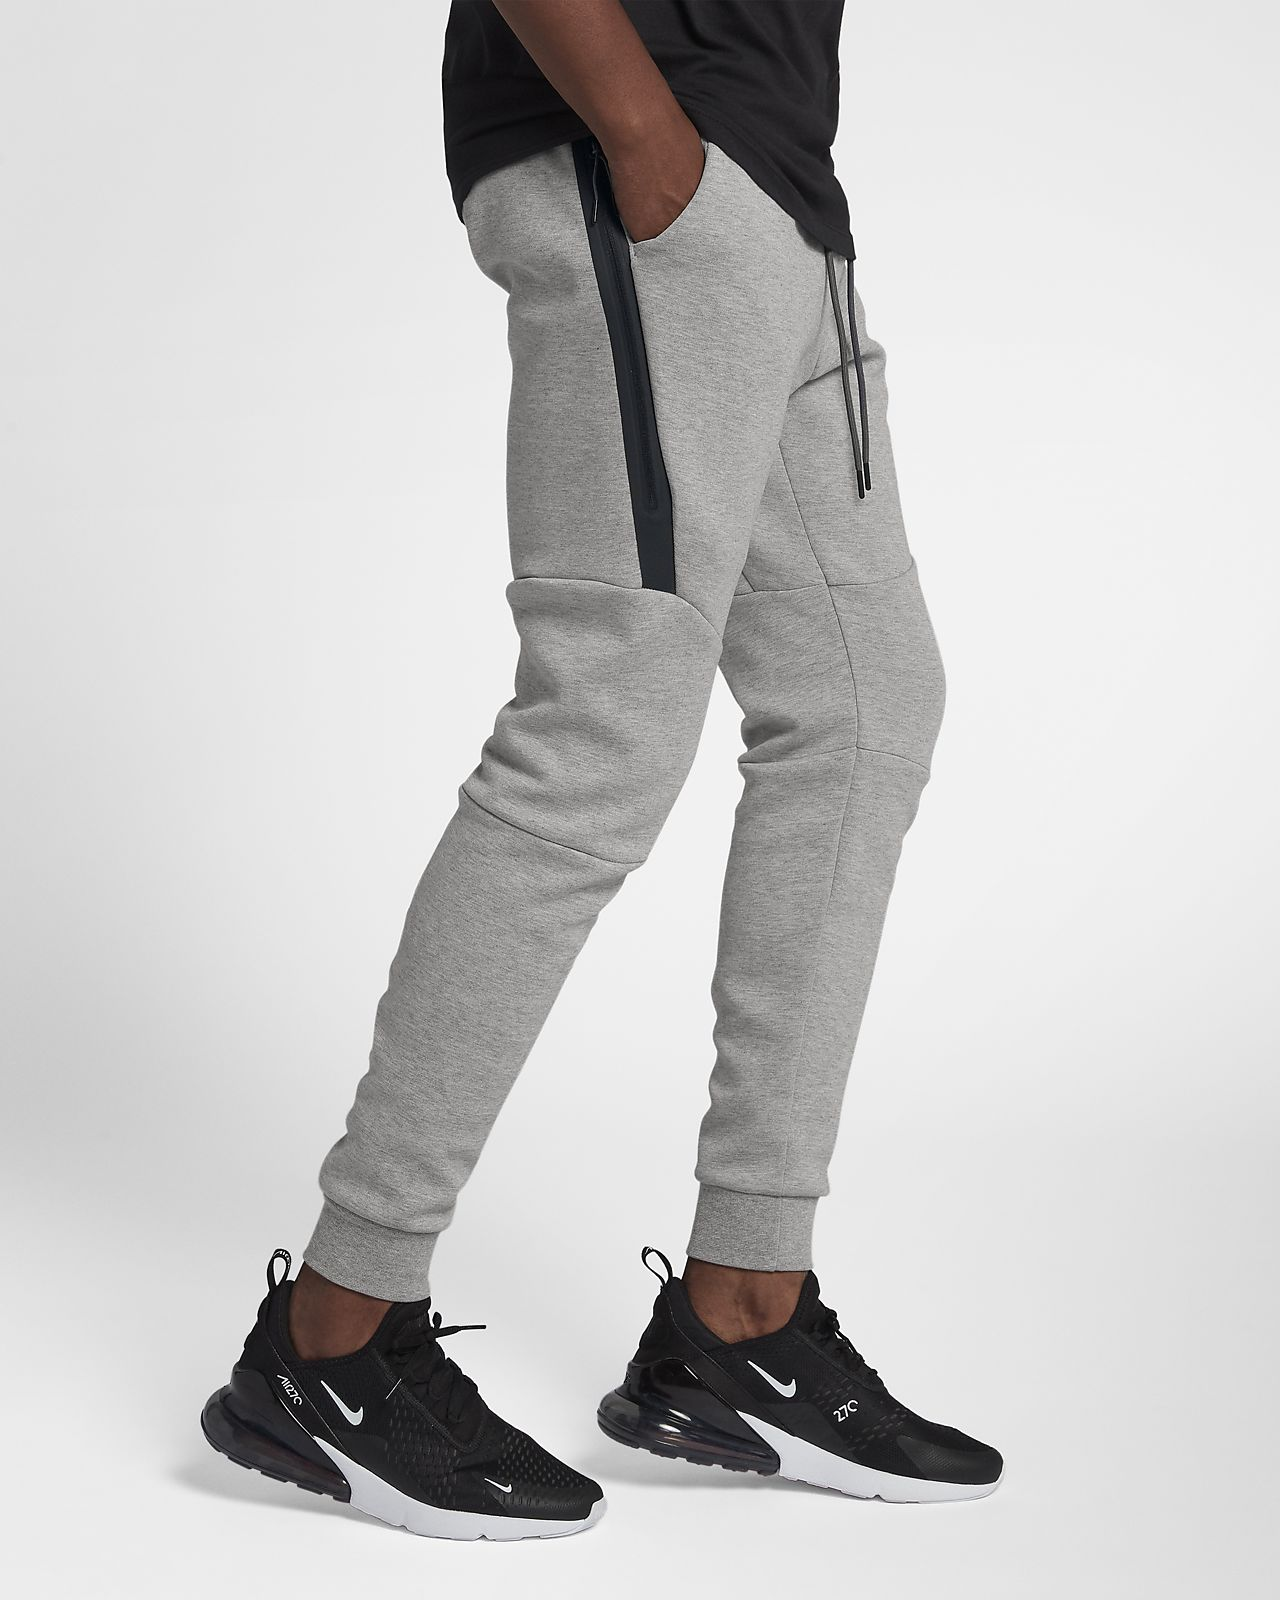 73d2a481 Nike Sportswear Tech Fleece Men's Joggers